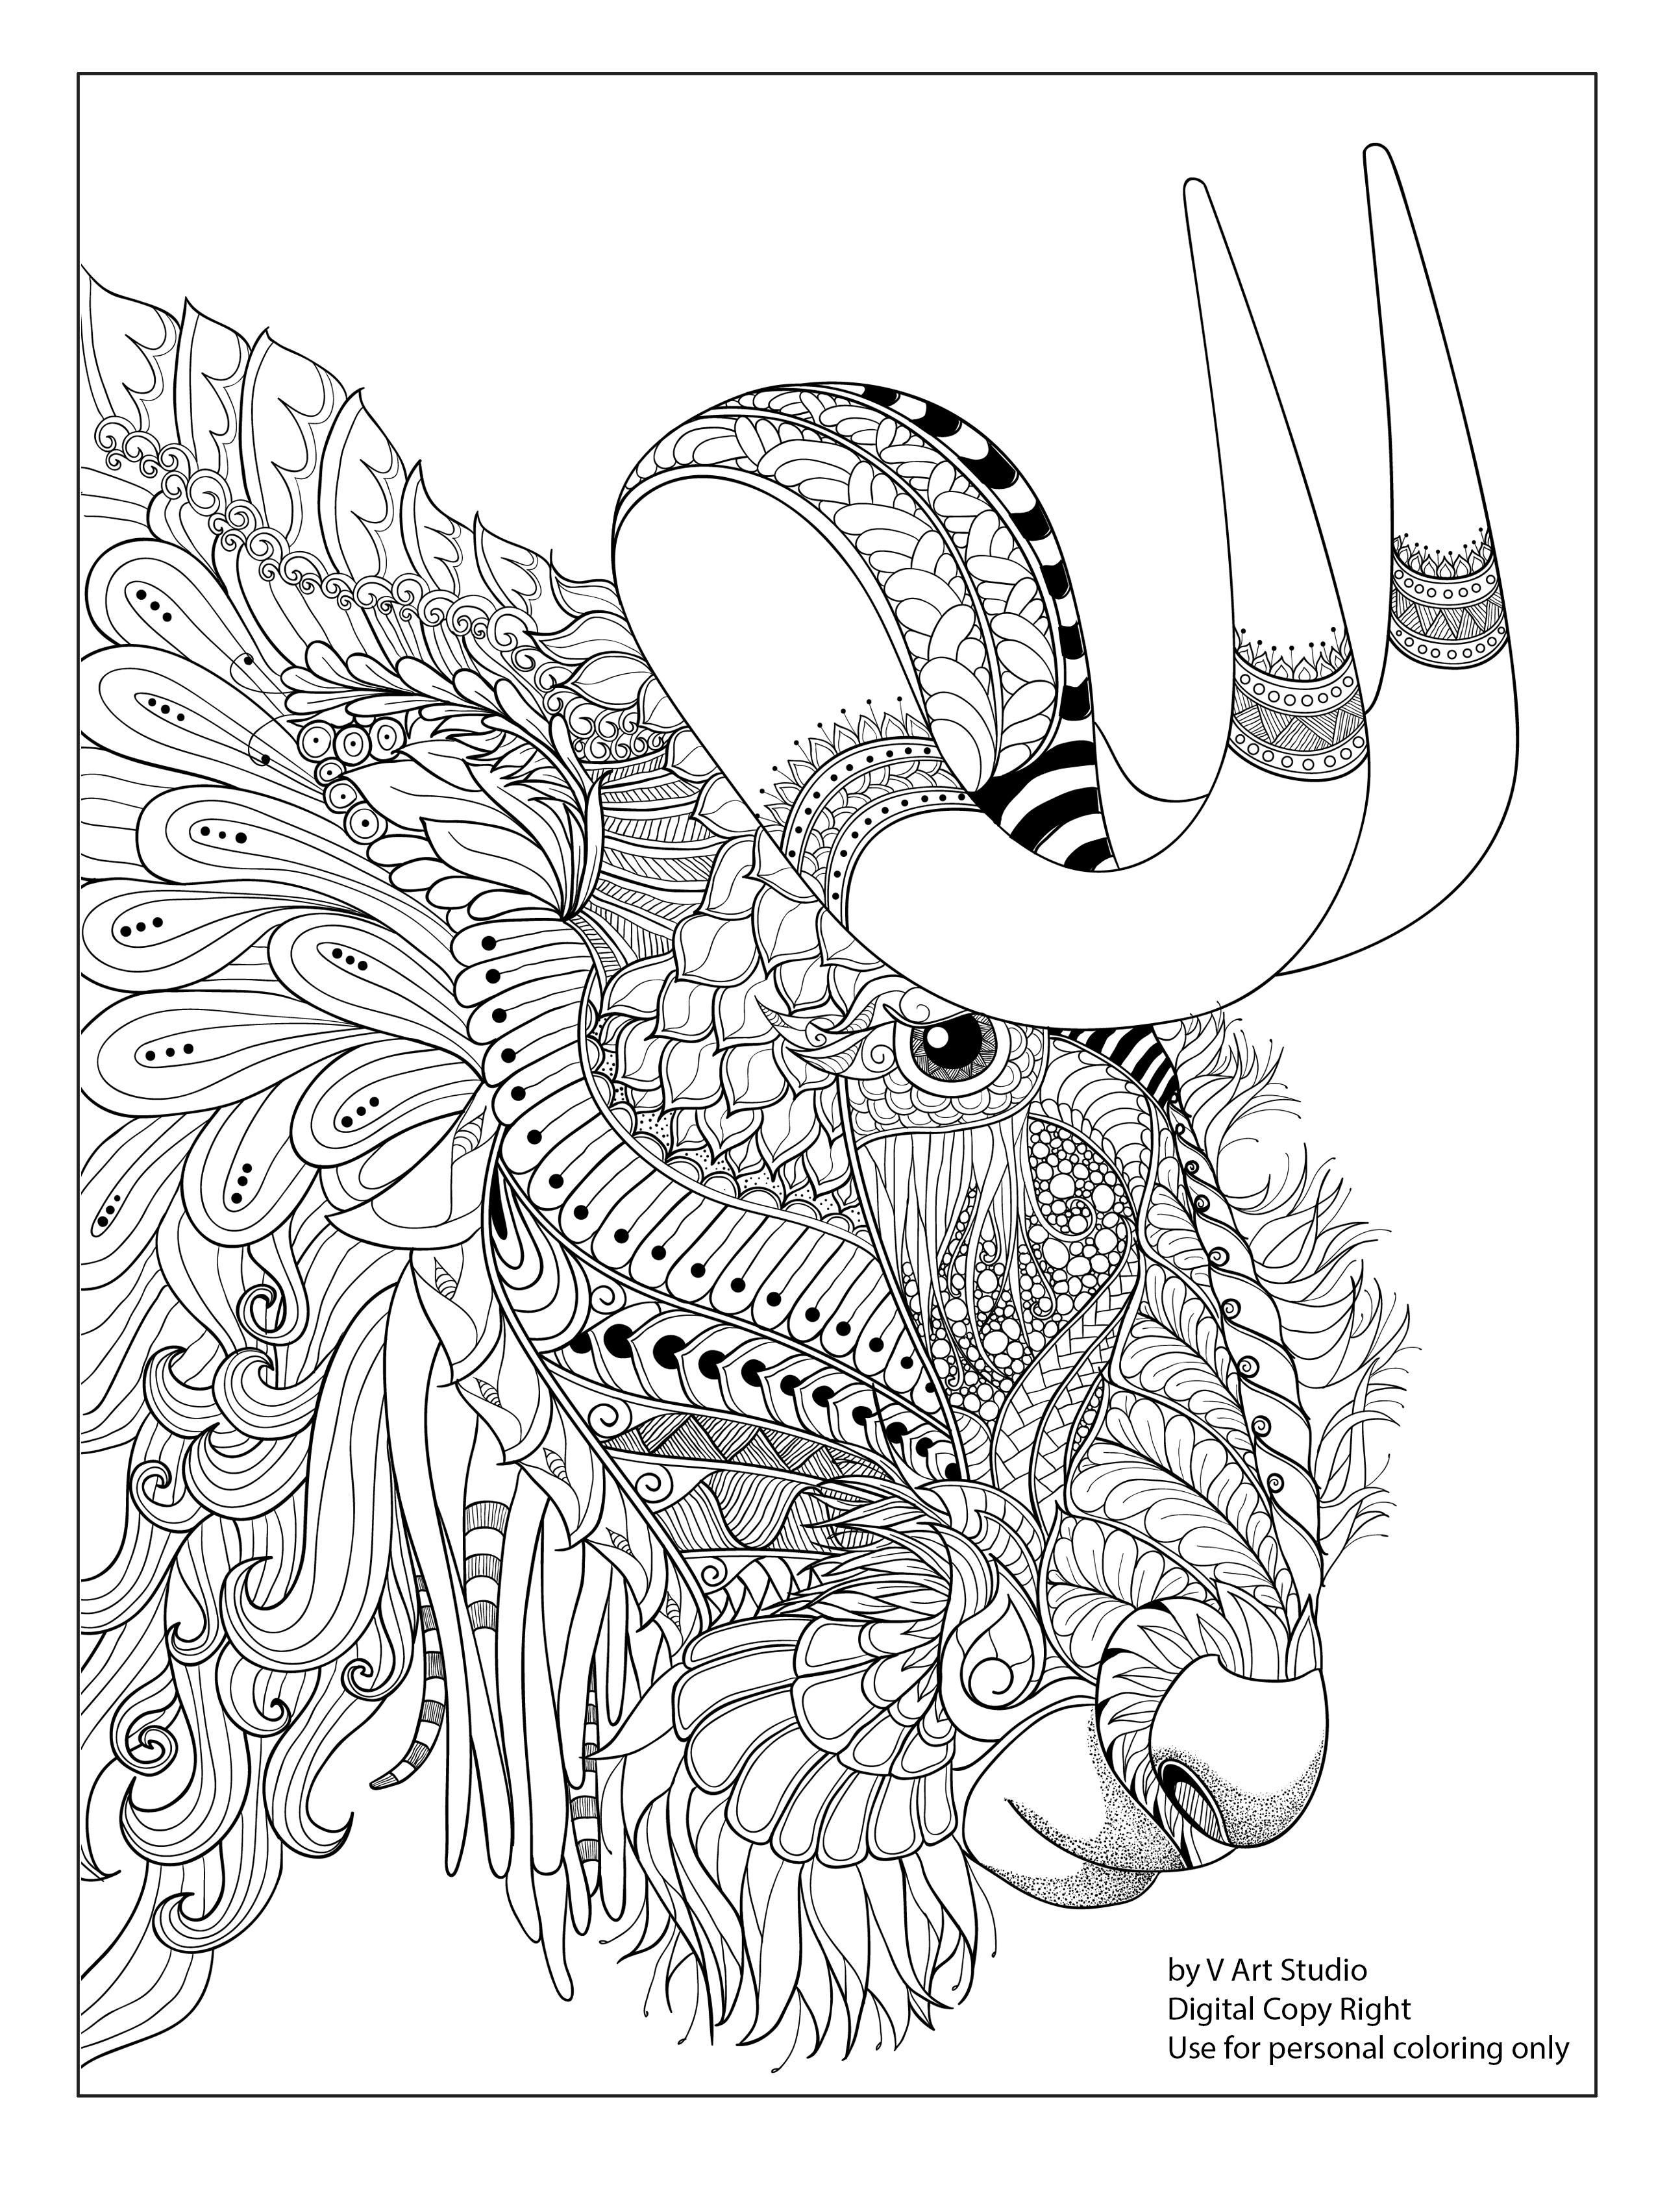 Free Sample Coloring Page From Big Horn Collection Coloring Book Available On Amazon Animal Coloring Books Book Flowers Coloring Books